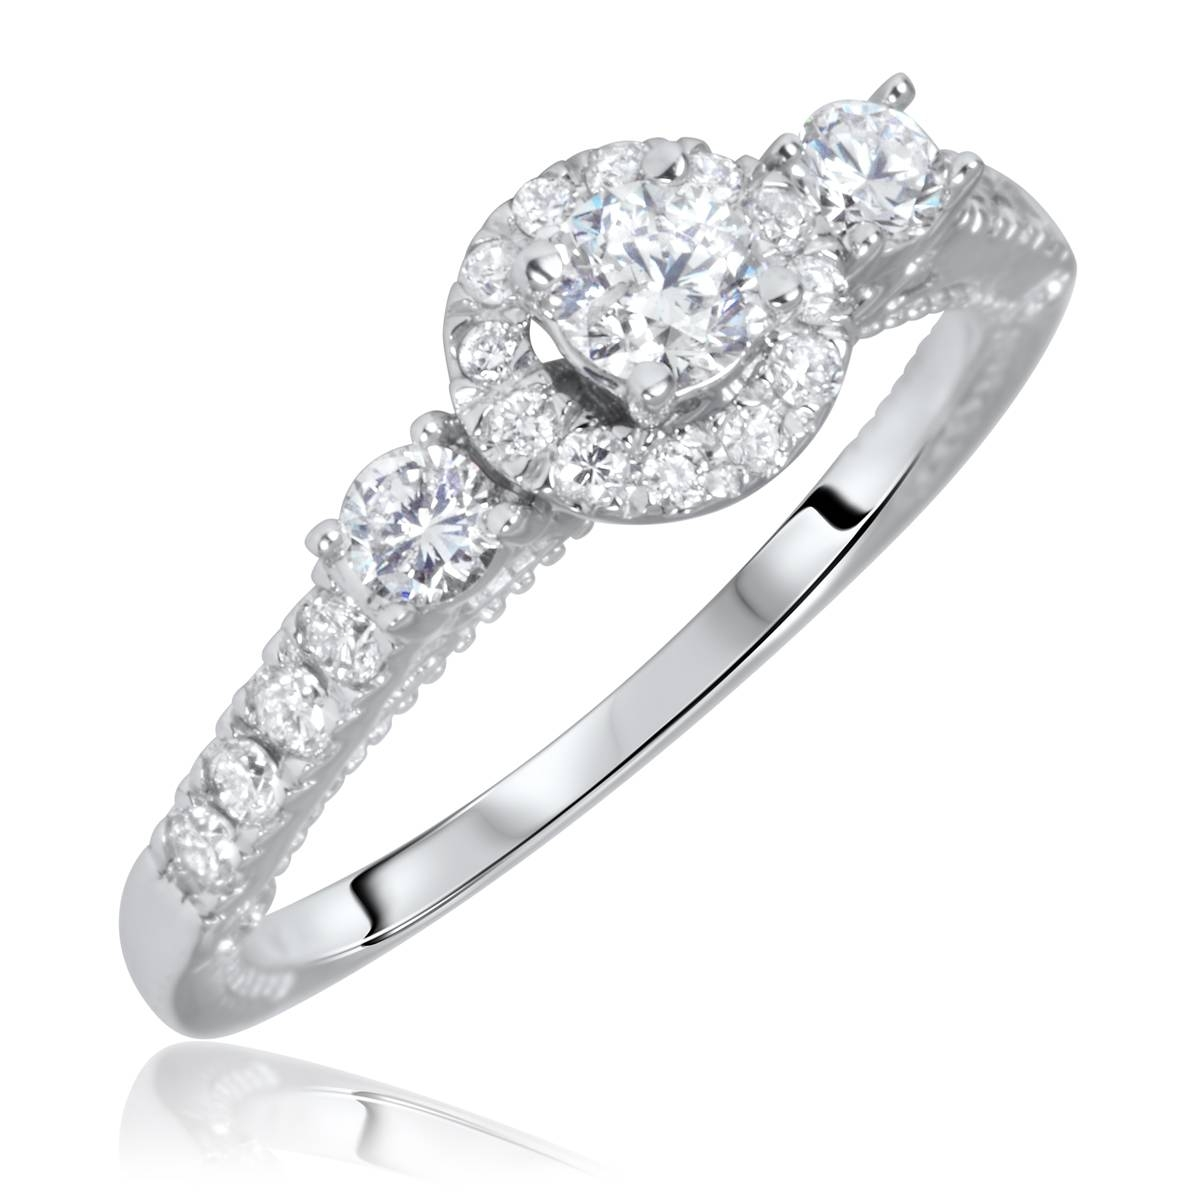 Wedding Rings : Men Wedding Rings Gold Engagement Rings Platinum Intended For Womans Engagement Rings (View 12 of 15)